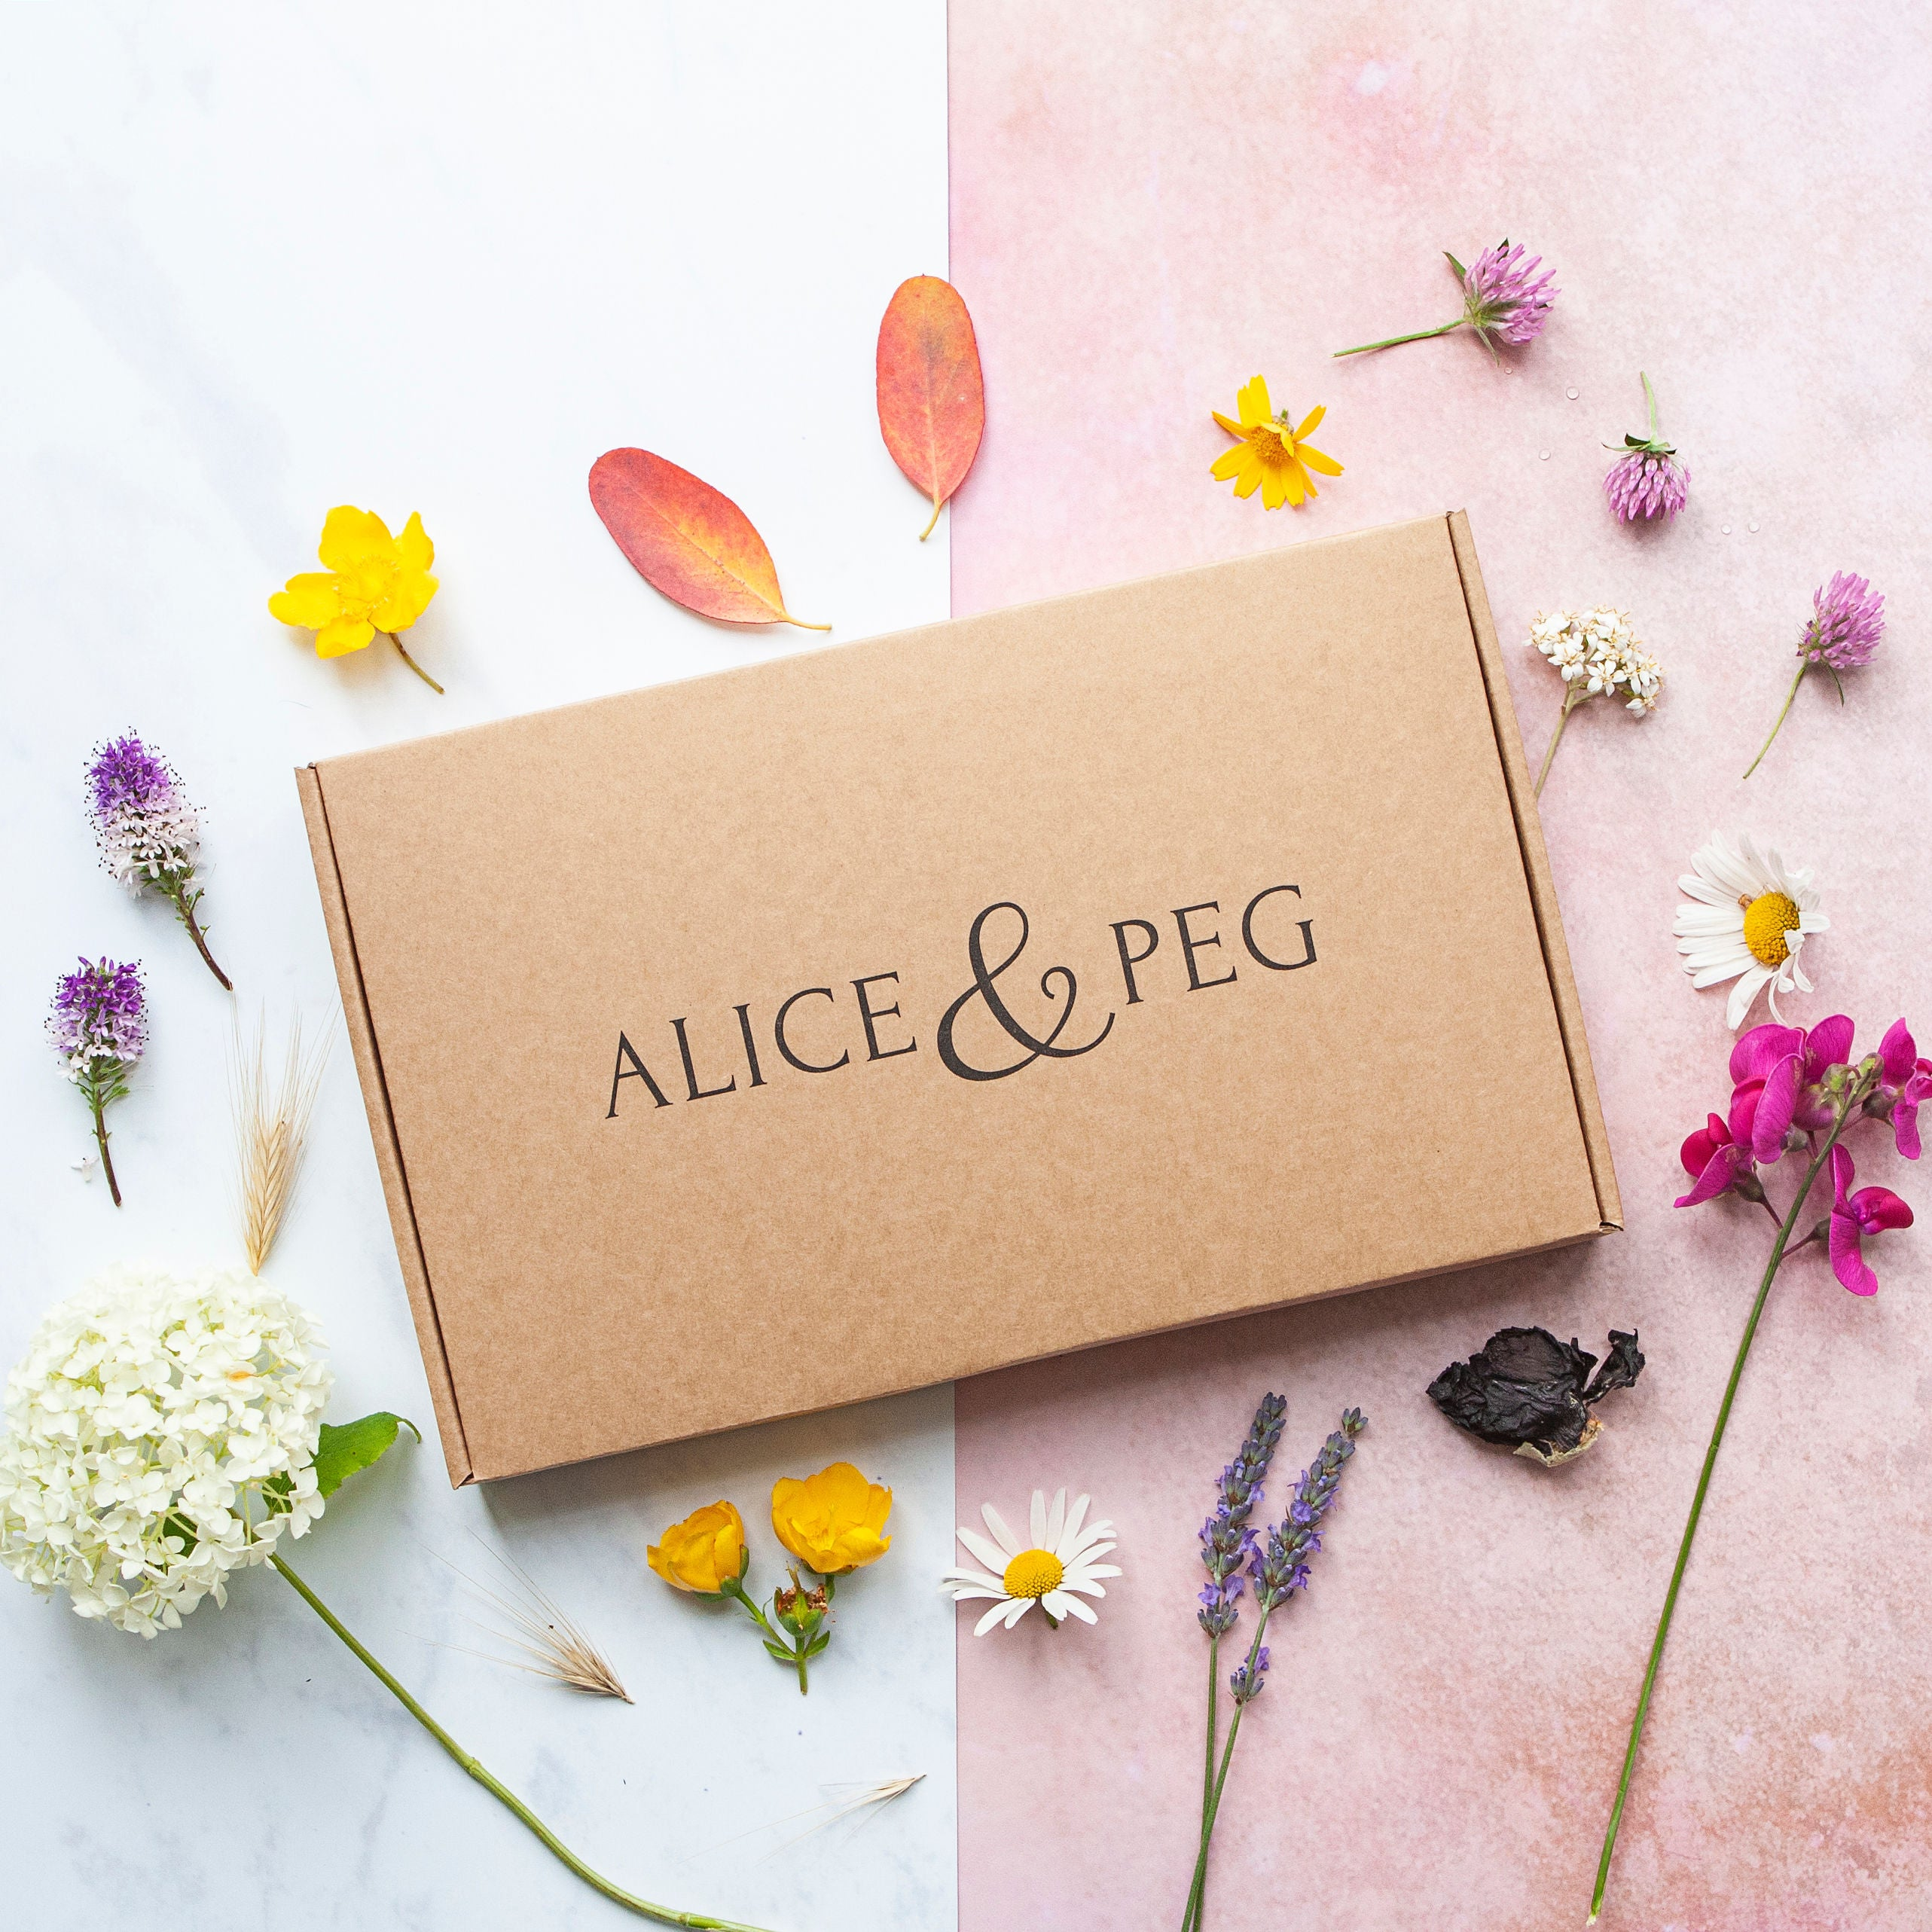 Alice & Peg Little Bathtime Rituals Three Month Letterbox Subscription